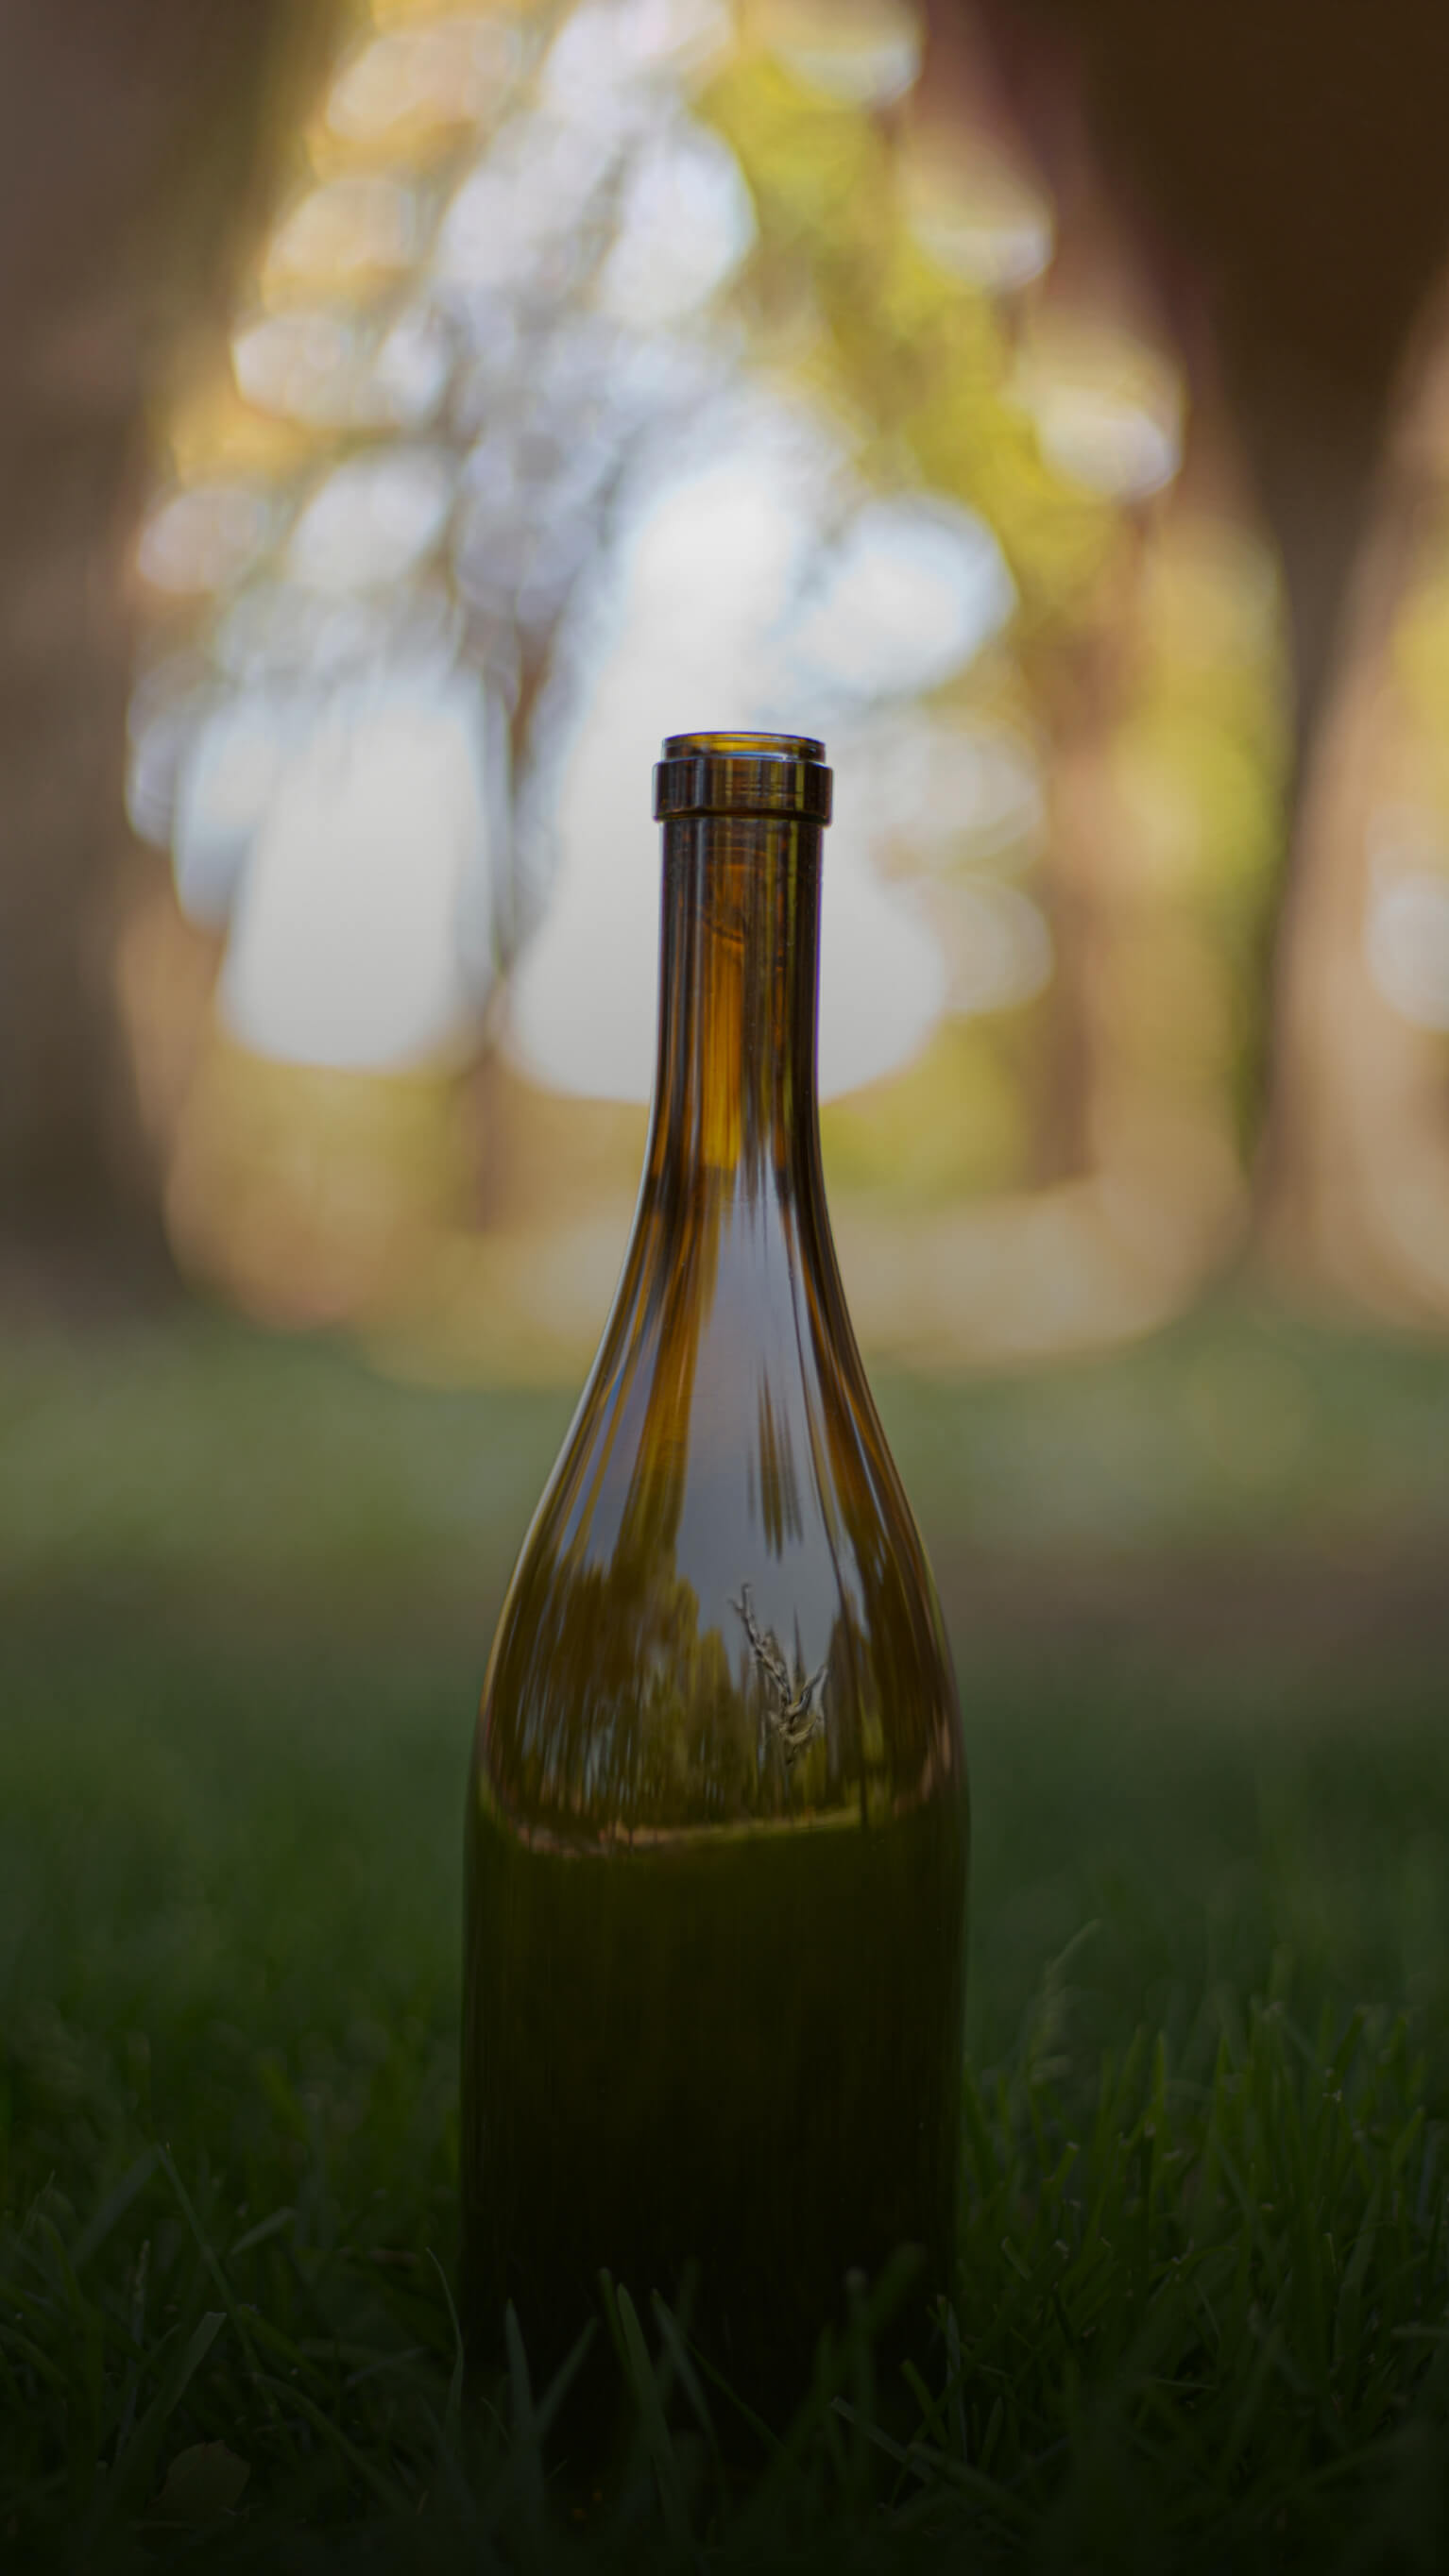 A verre vert bottle on the grass with a forest in the background.